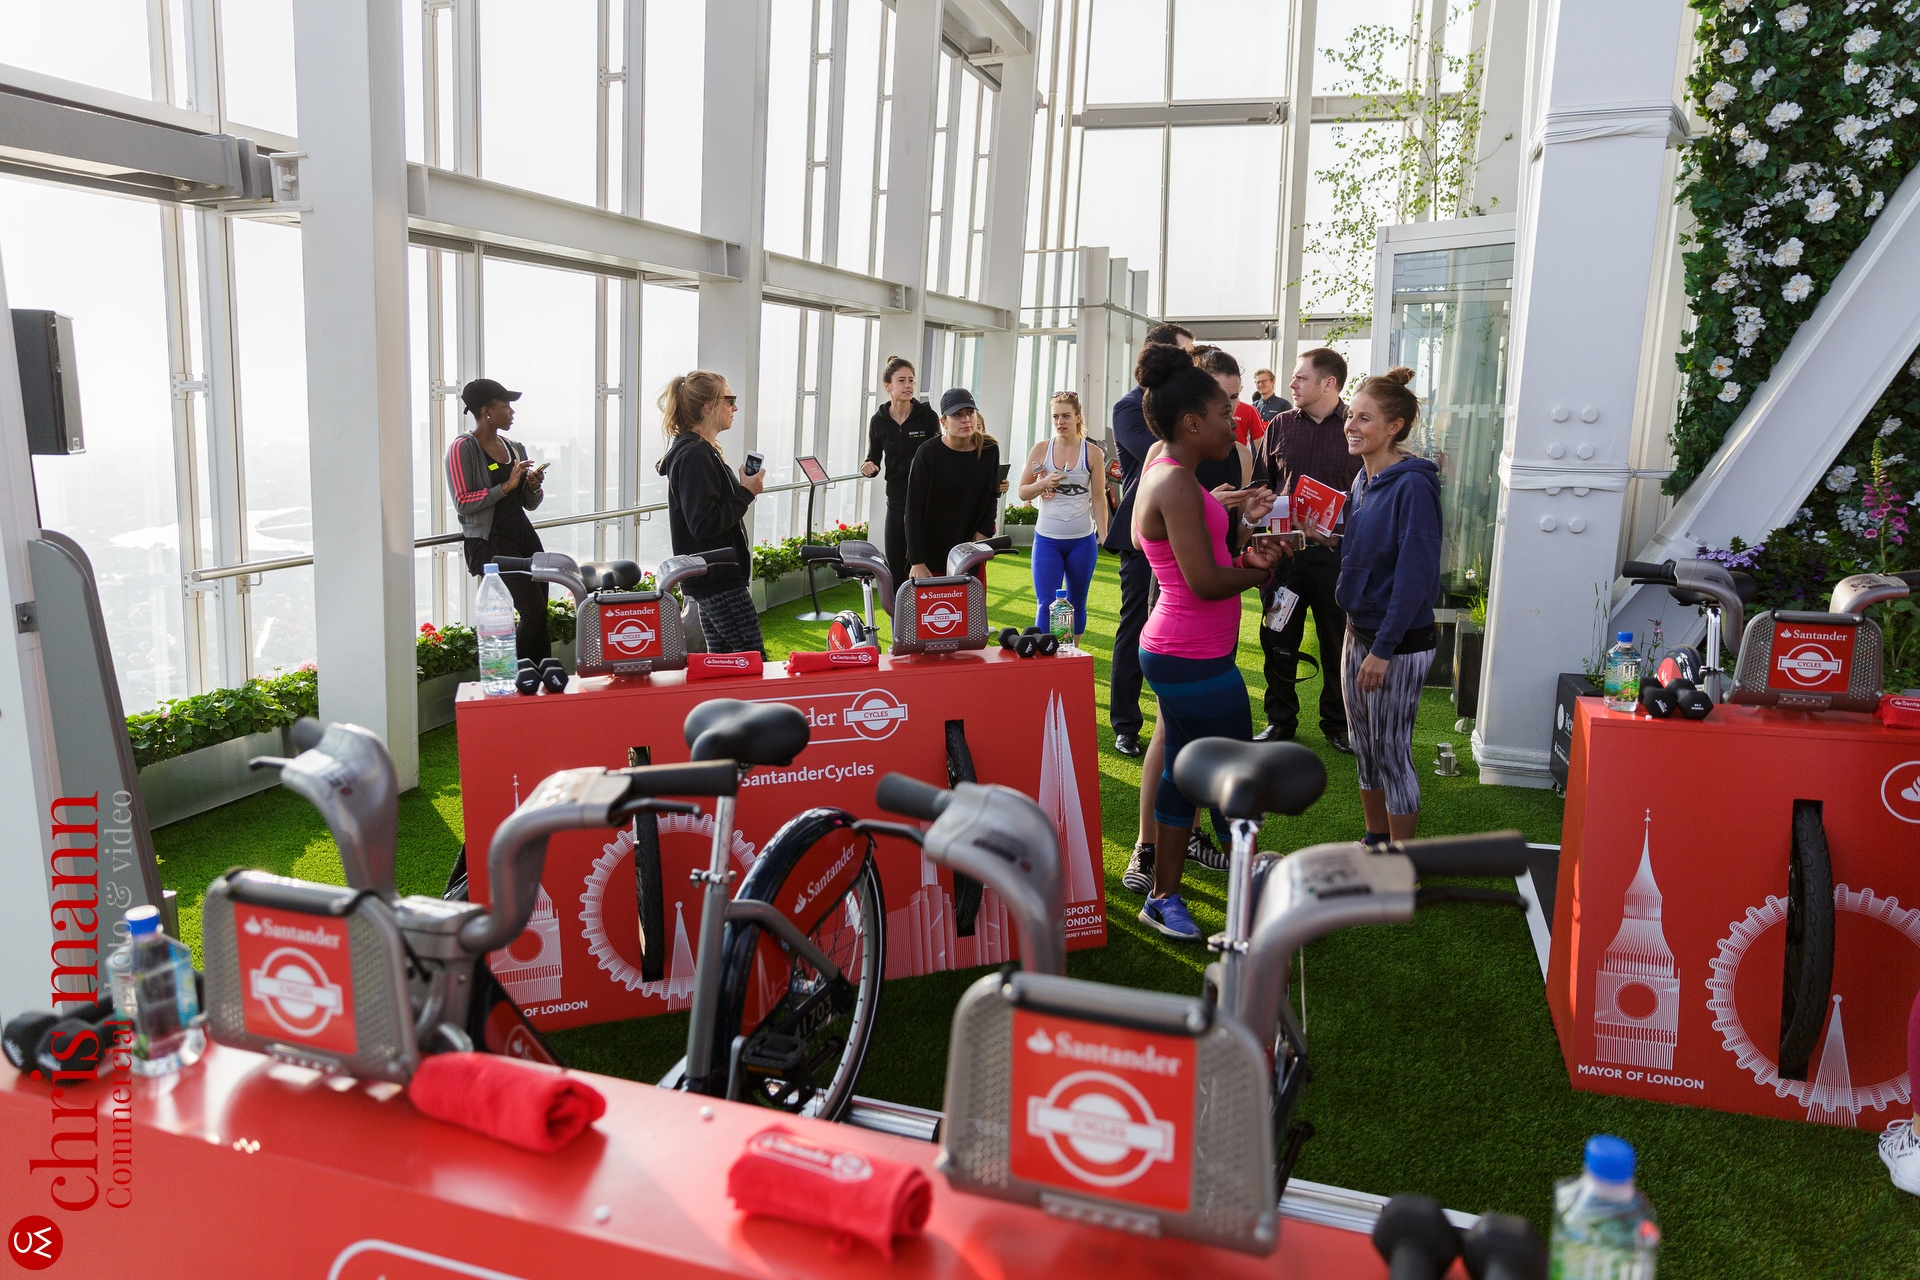 bloggers and press gather for Santander Cycles spin-up class at The Shard London